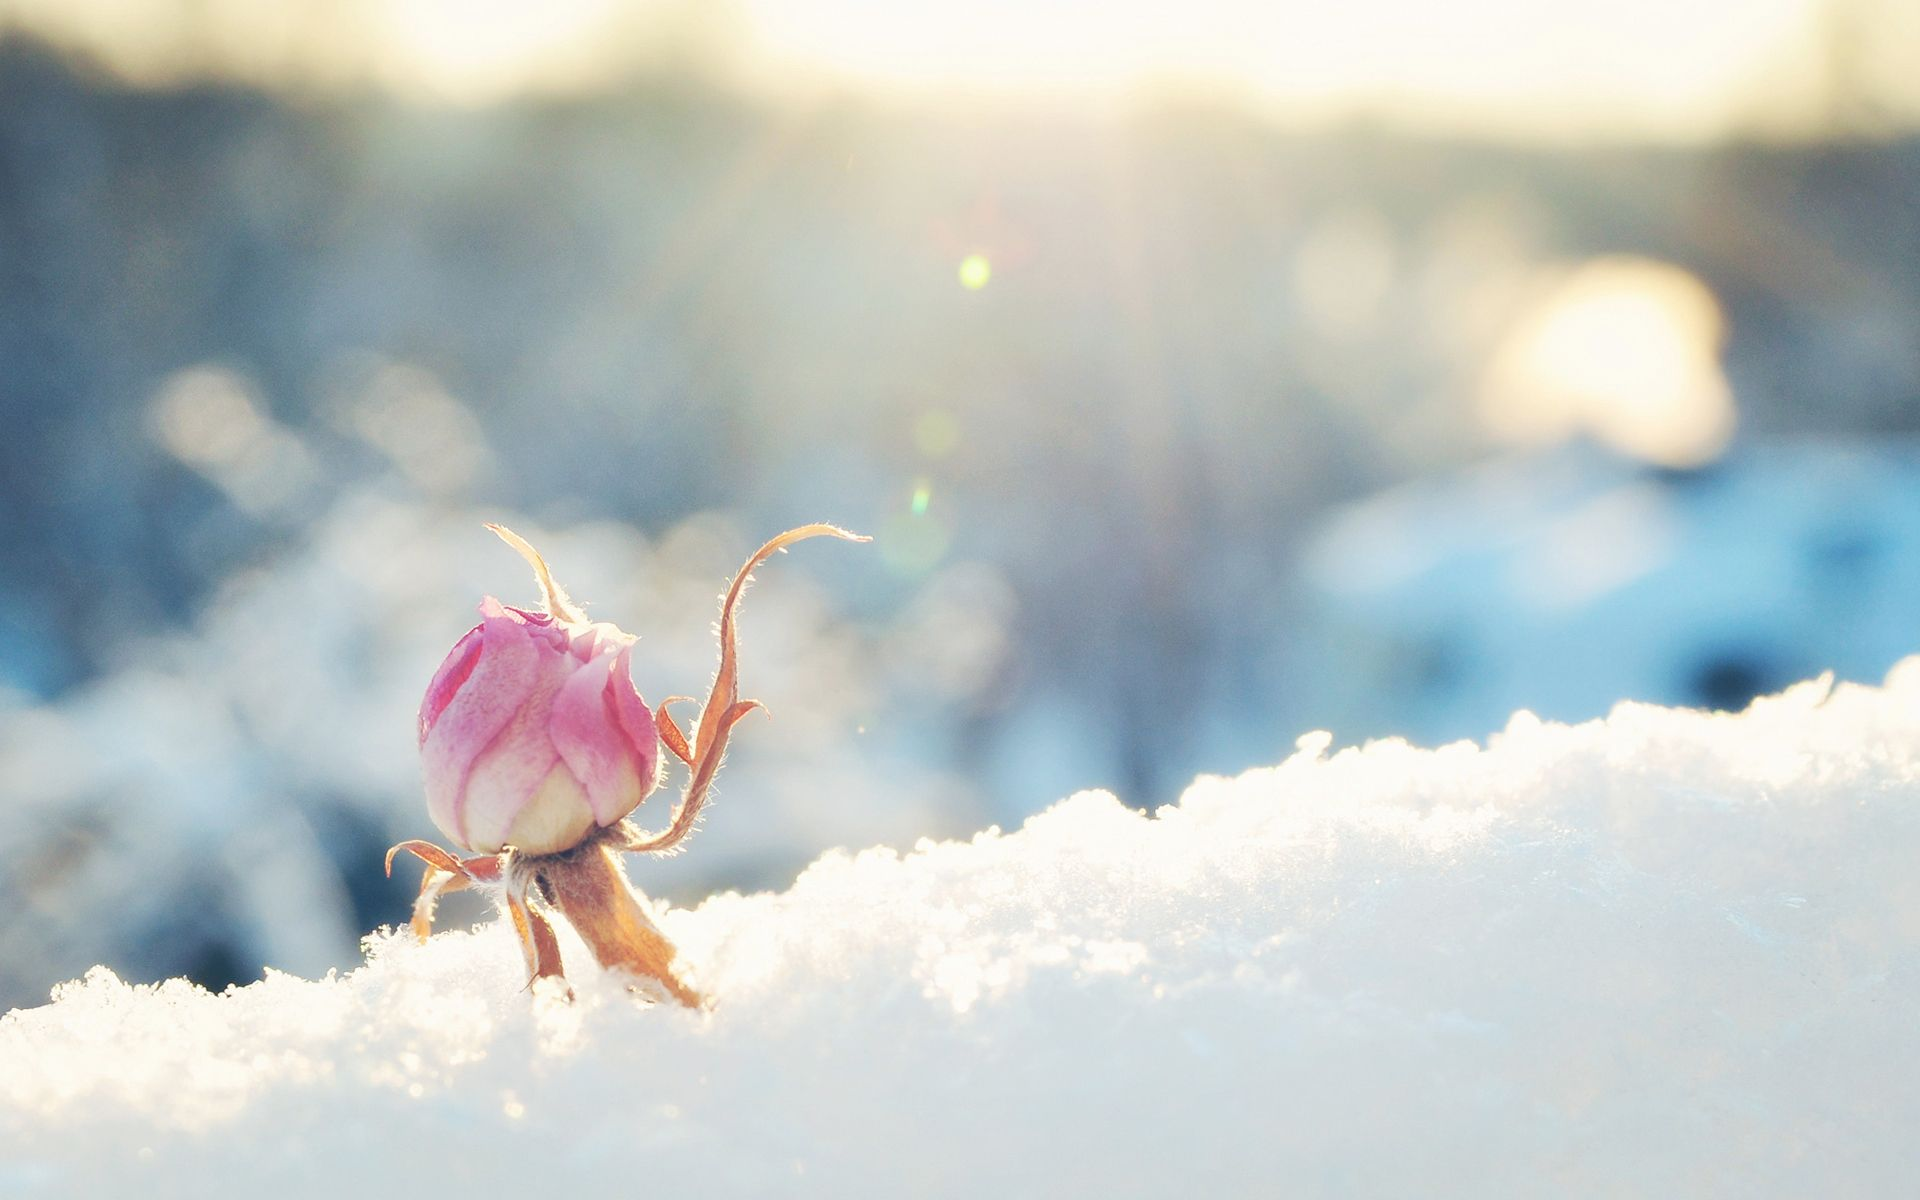 Winter flowers wallpapers pictures flowers pinterest - Rose in snow wallpaper ...